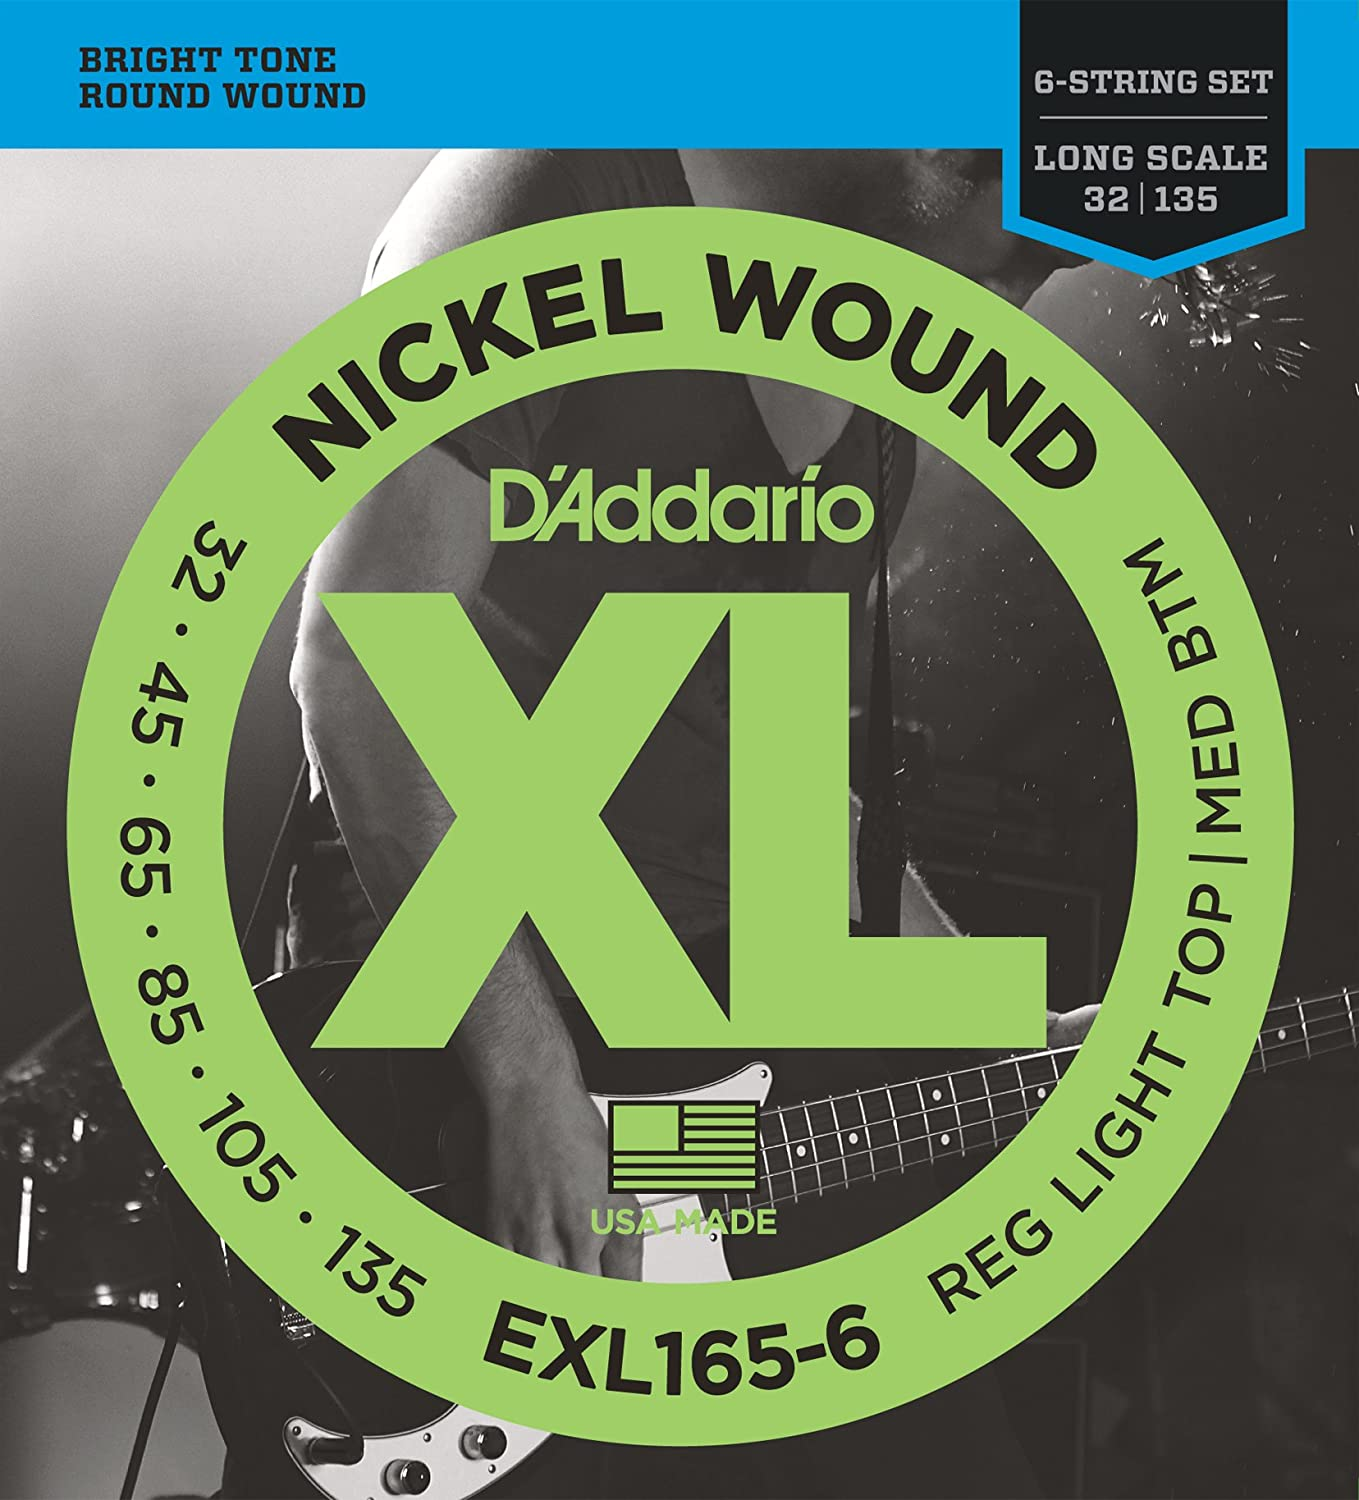 D'Addario EXL170-6 6-String Nickel Wound Bass Guitar Strings, Light, 32-130, Long Scale D'Addario &Co. Inc